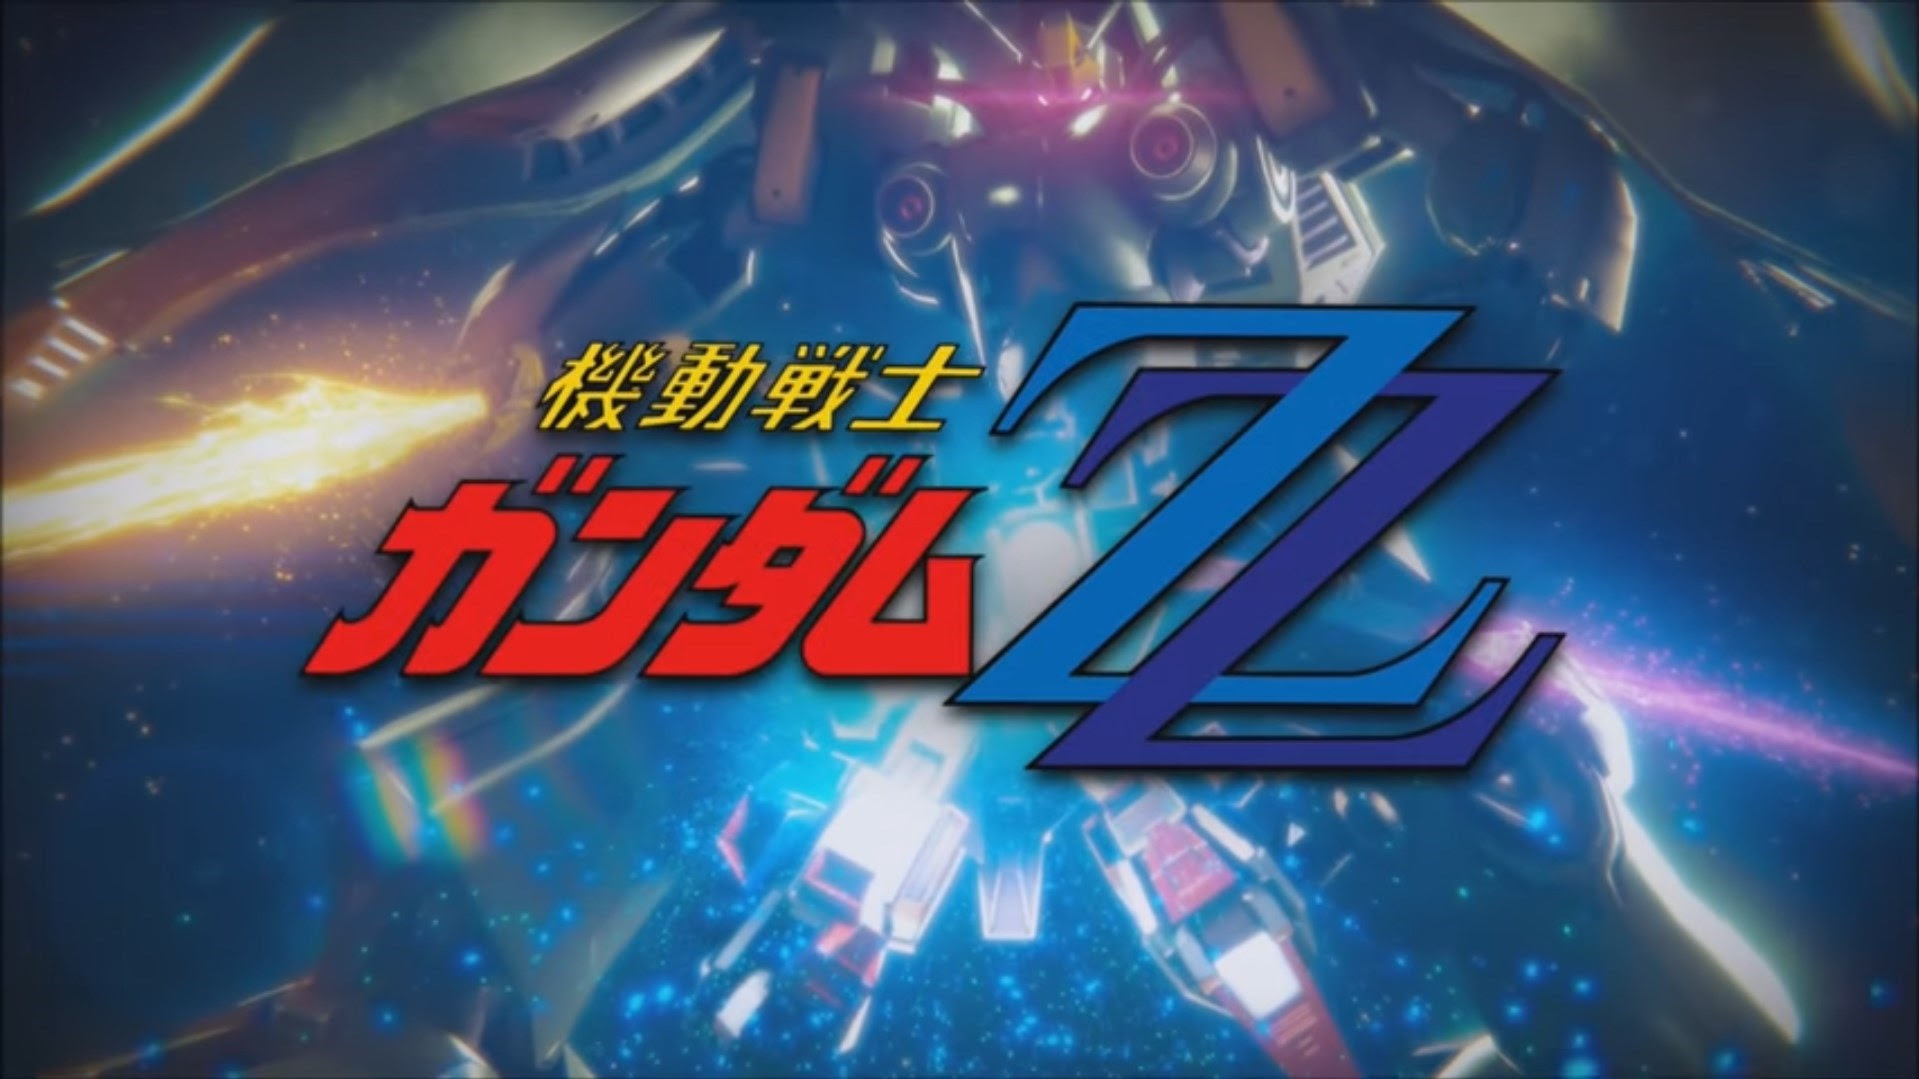 GundamInfo uploading full episodes of Gundam ZZ, which claims to be not an anime screenshot